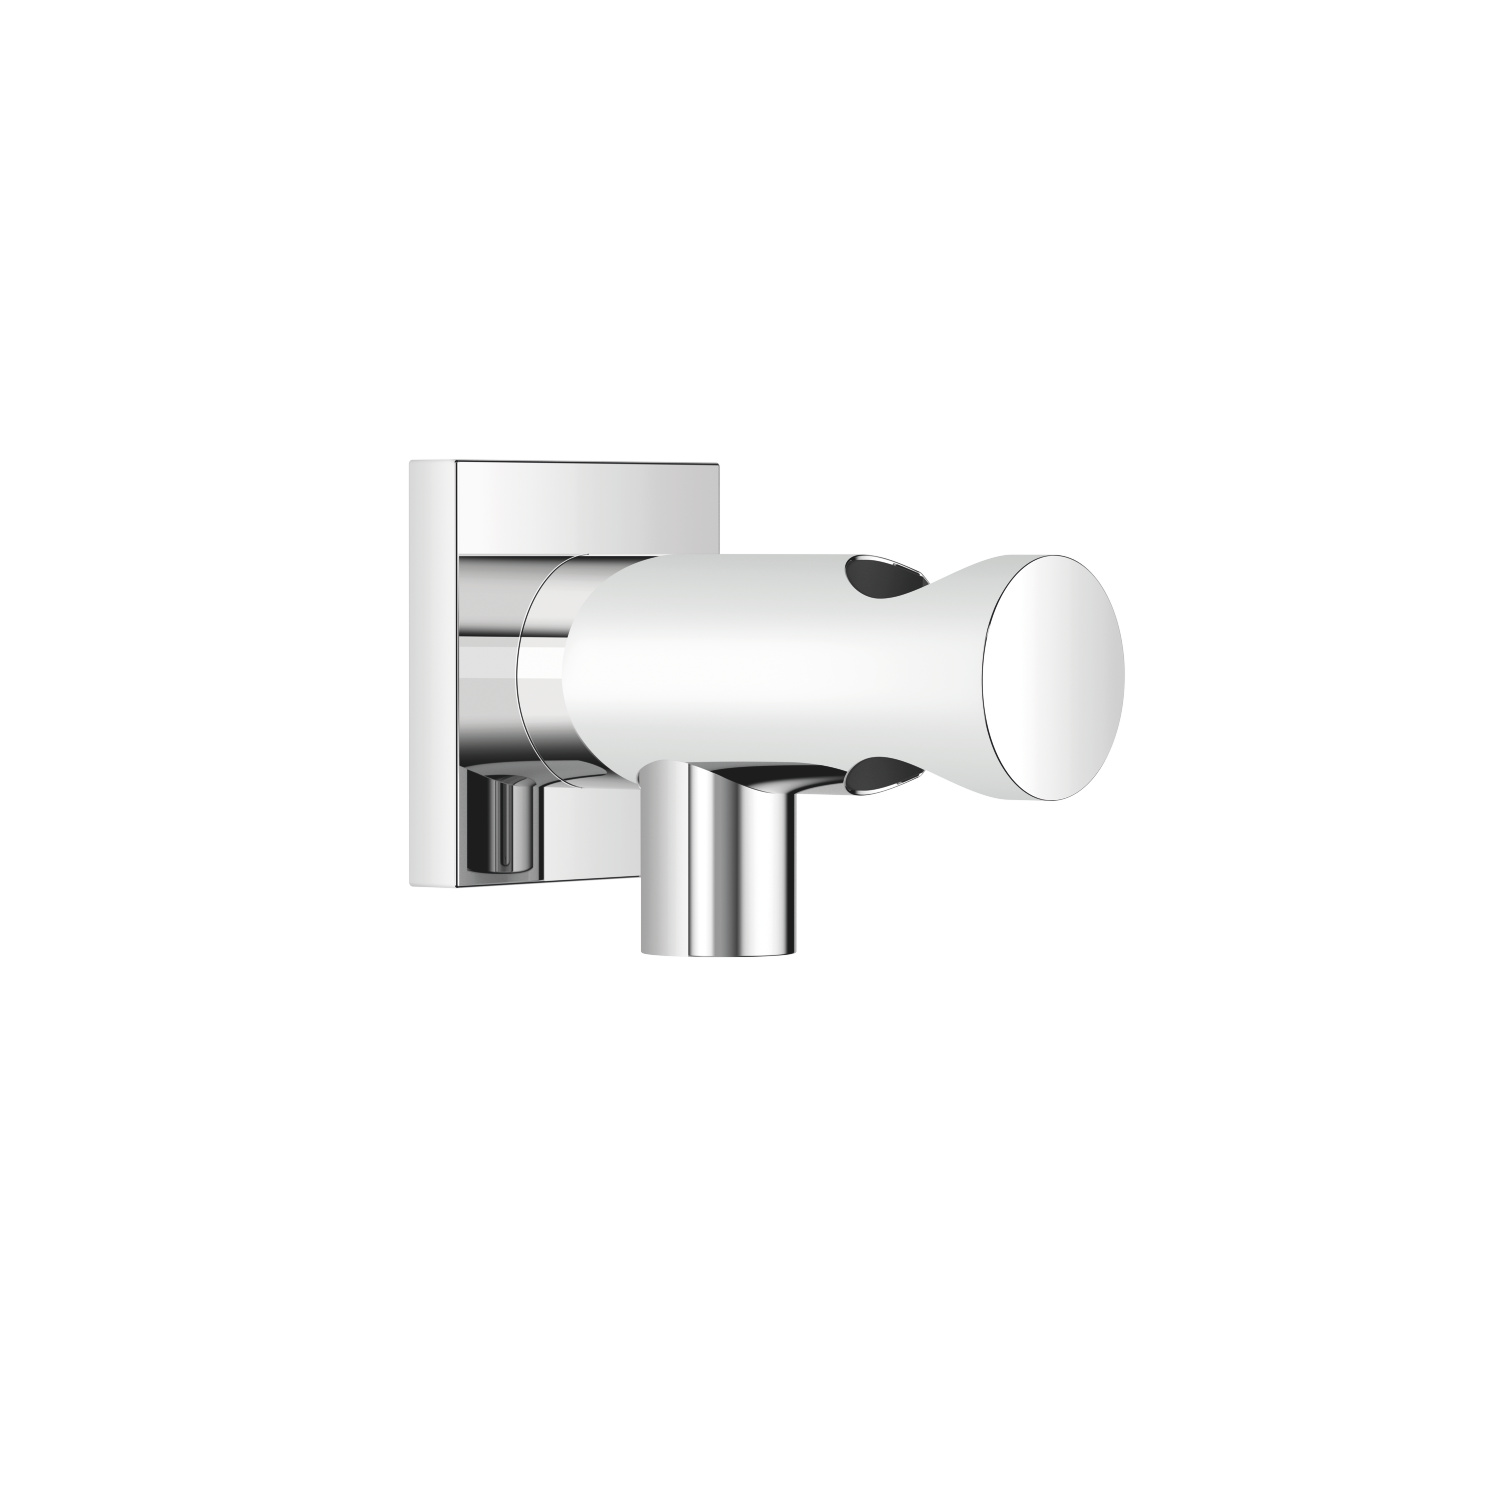 Wall elbow with integrated shower holder - polished chrome